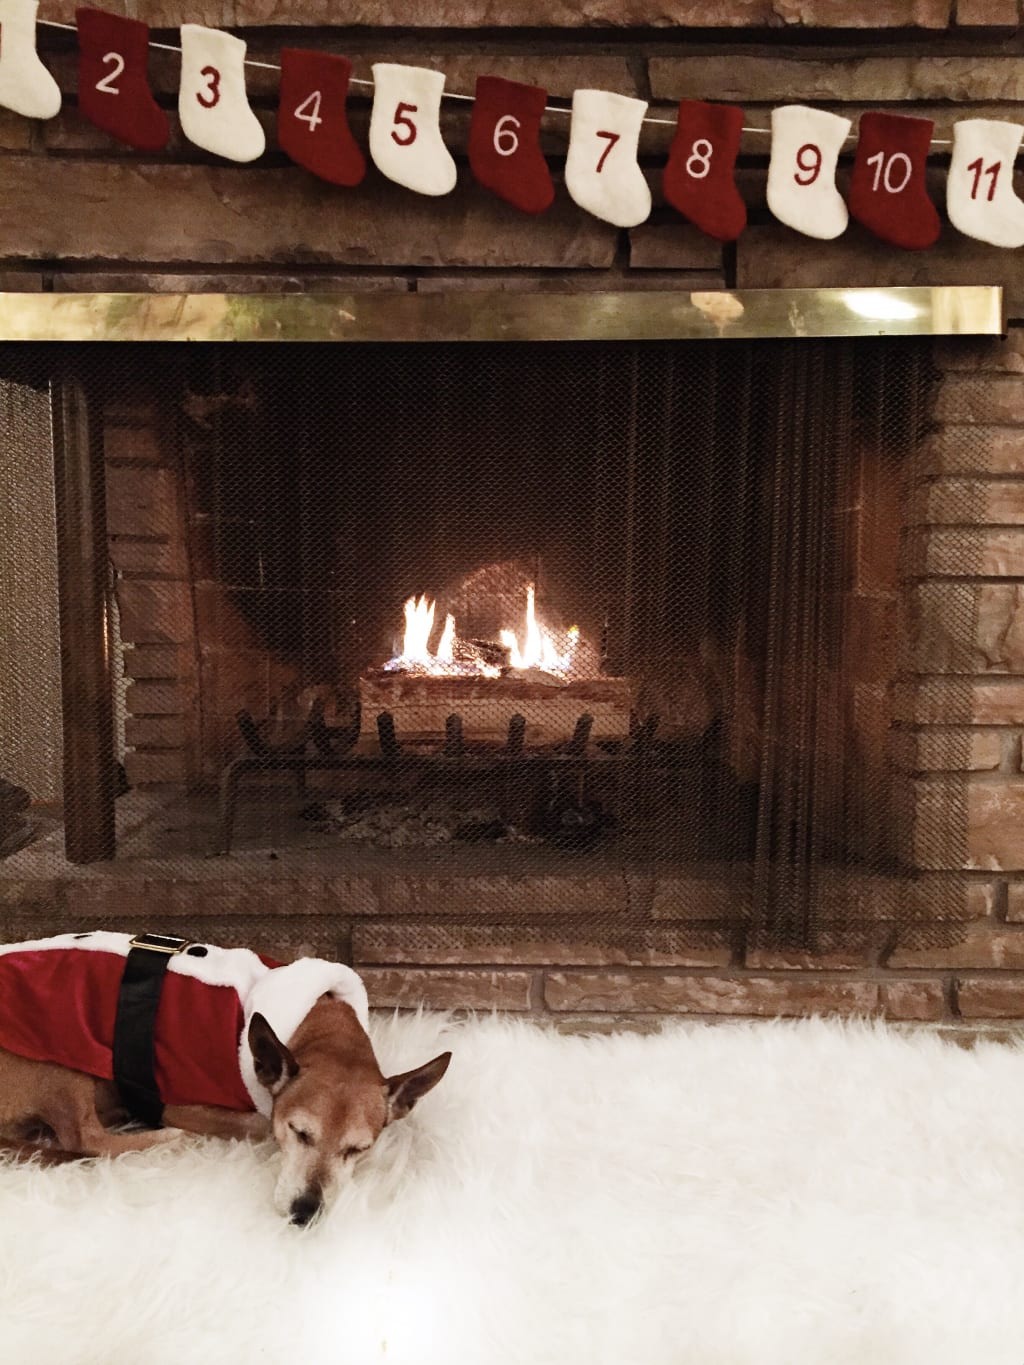 Twas the night before Christmas at Falconhead Resort & Country Club